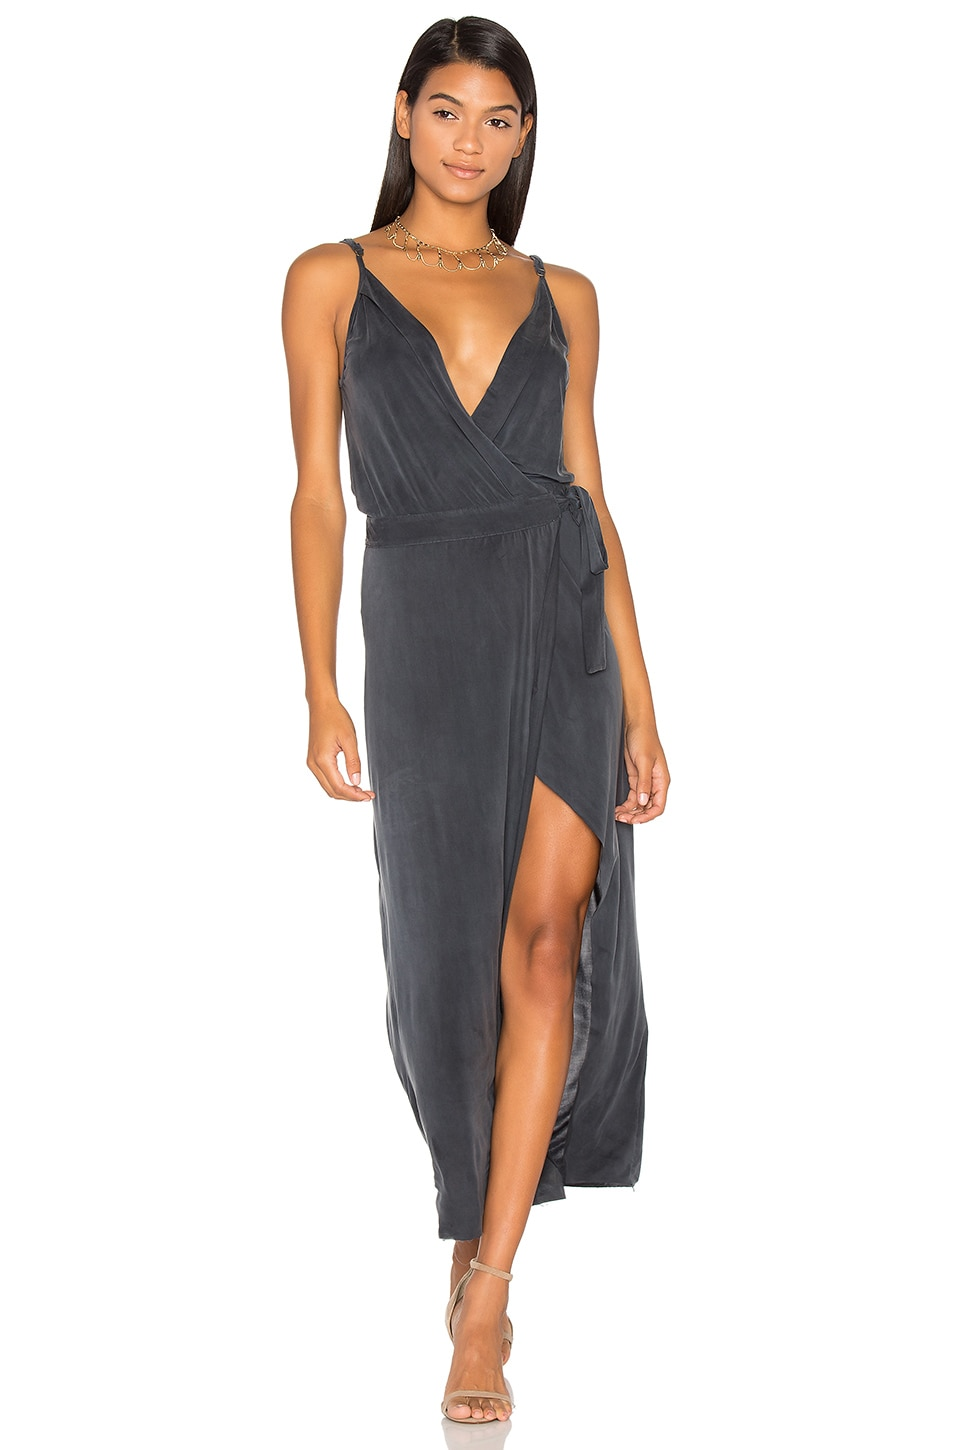 Bessie Dress by YFB CLOTHING